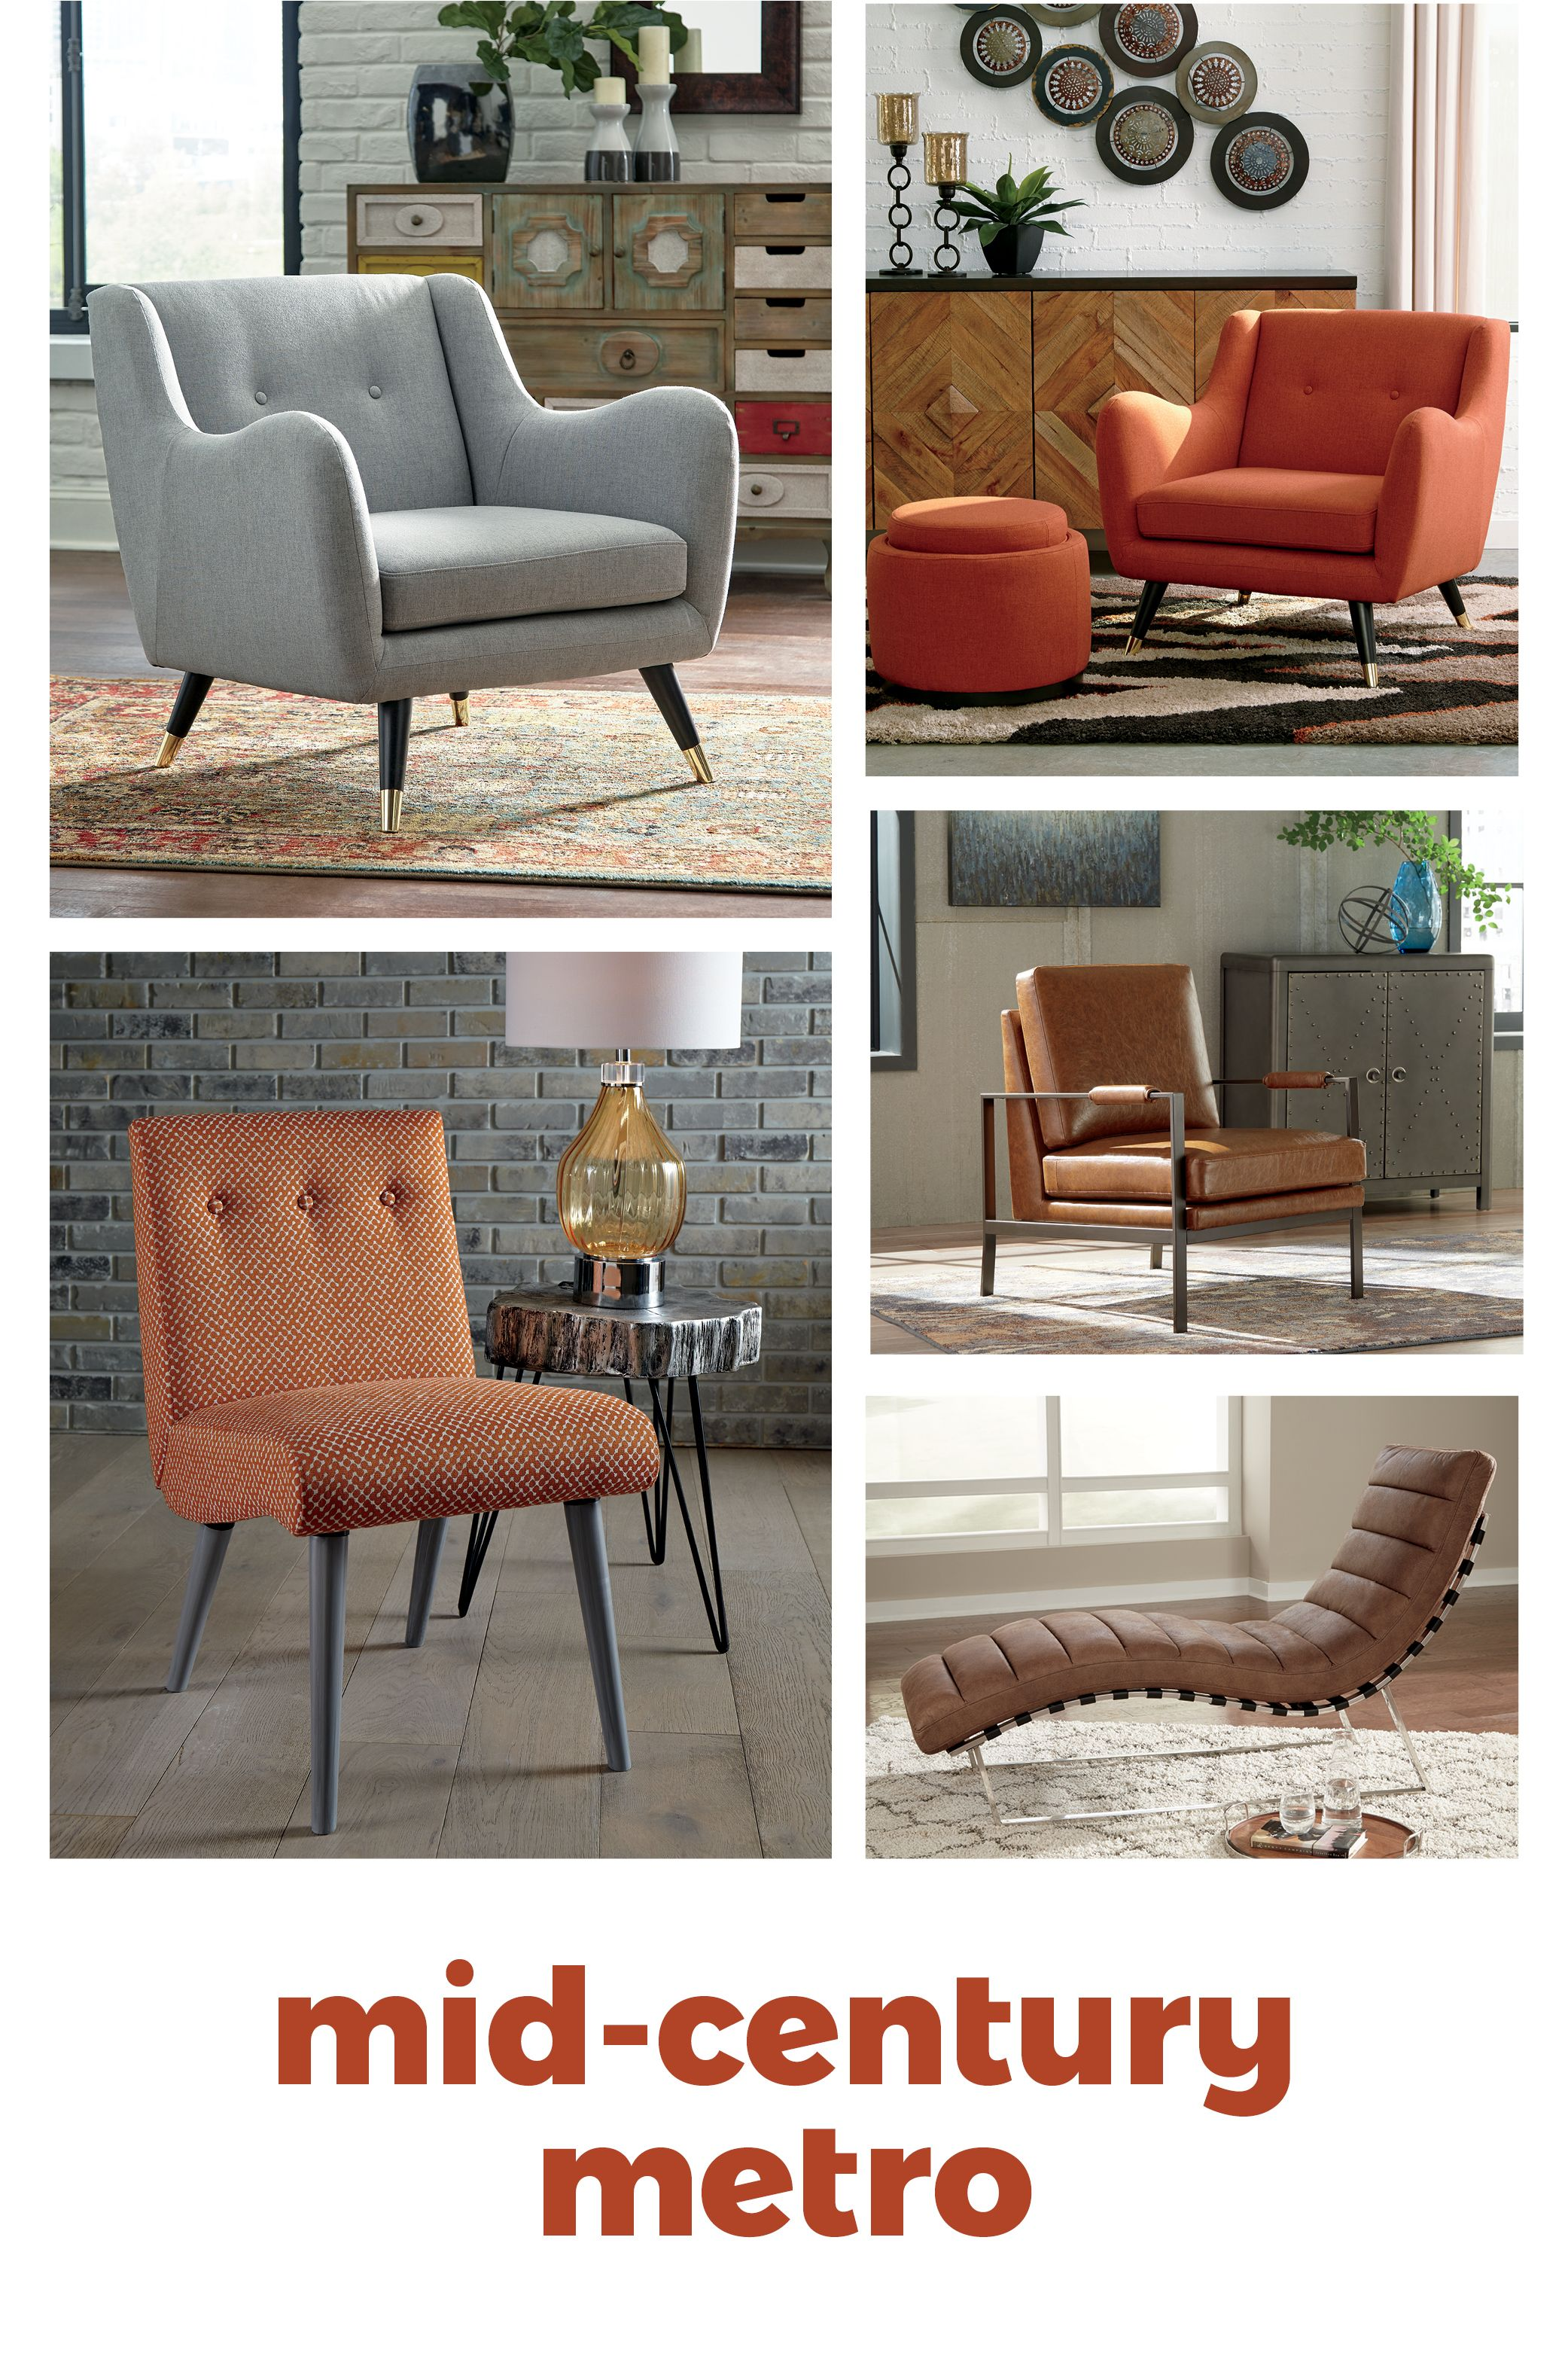 Mid Century Metro Chairs By Ashley Furniture With Images Furniture Outdoor Furniture Sets Ashley Furniture